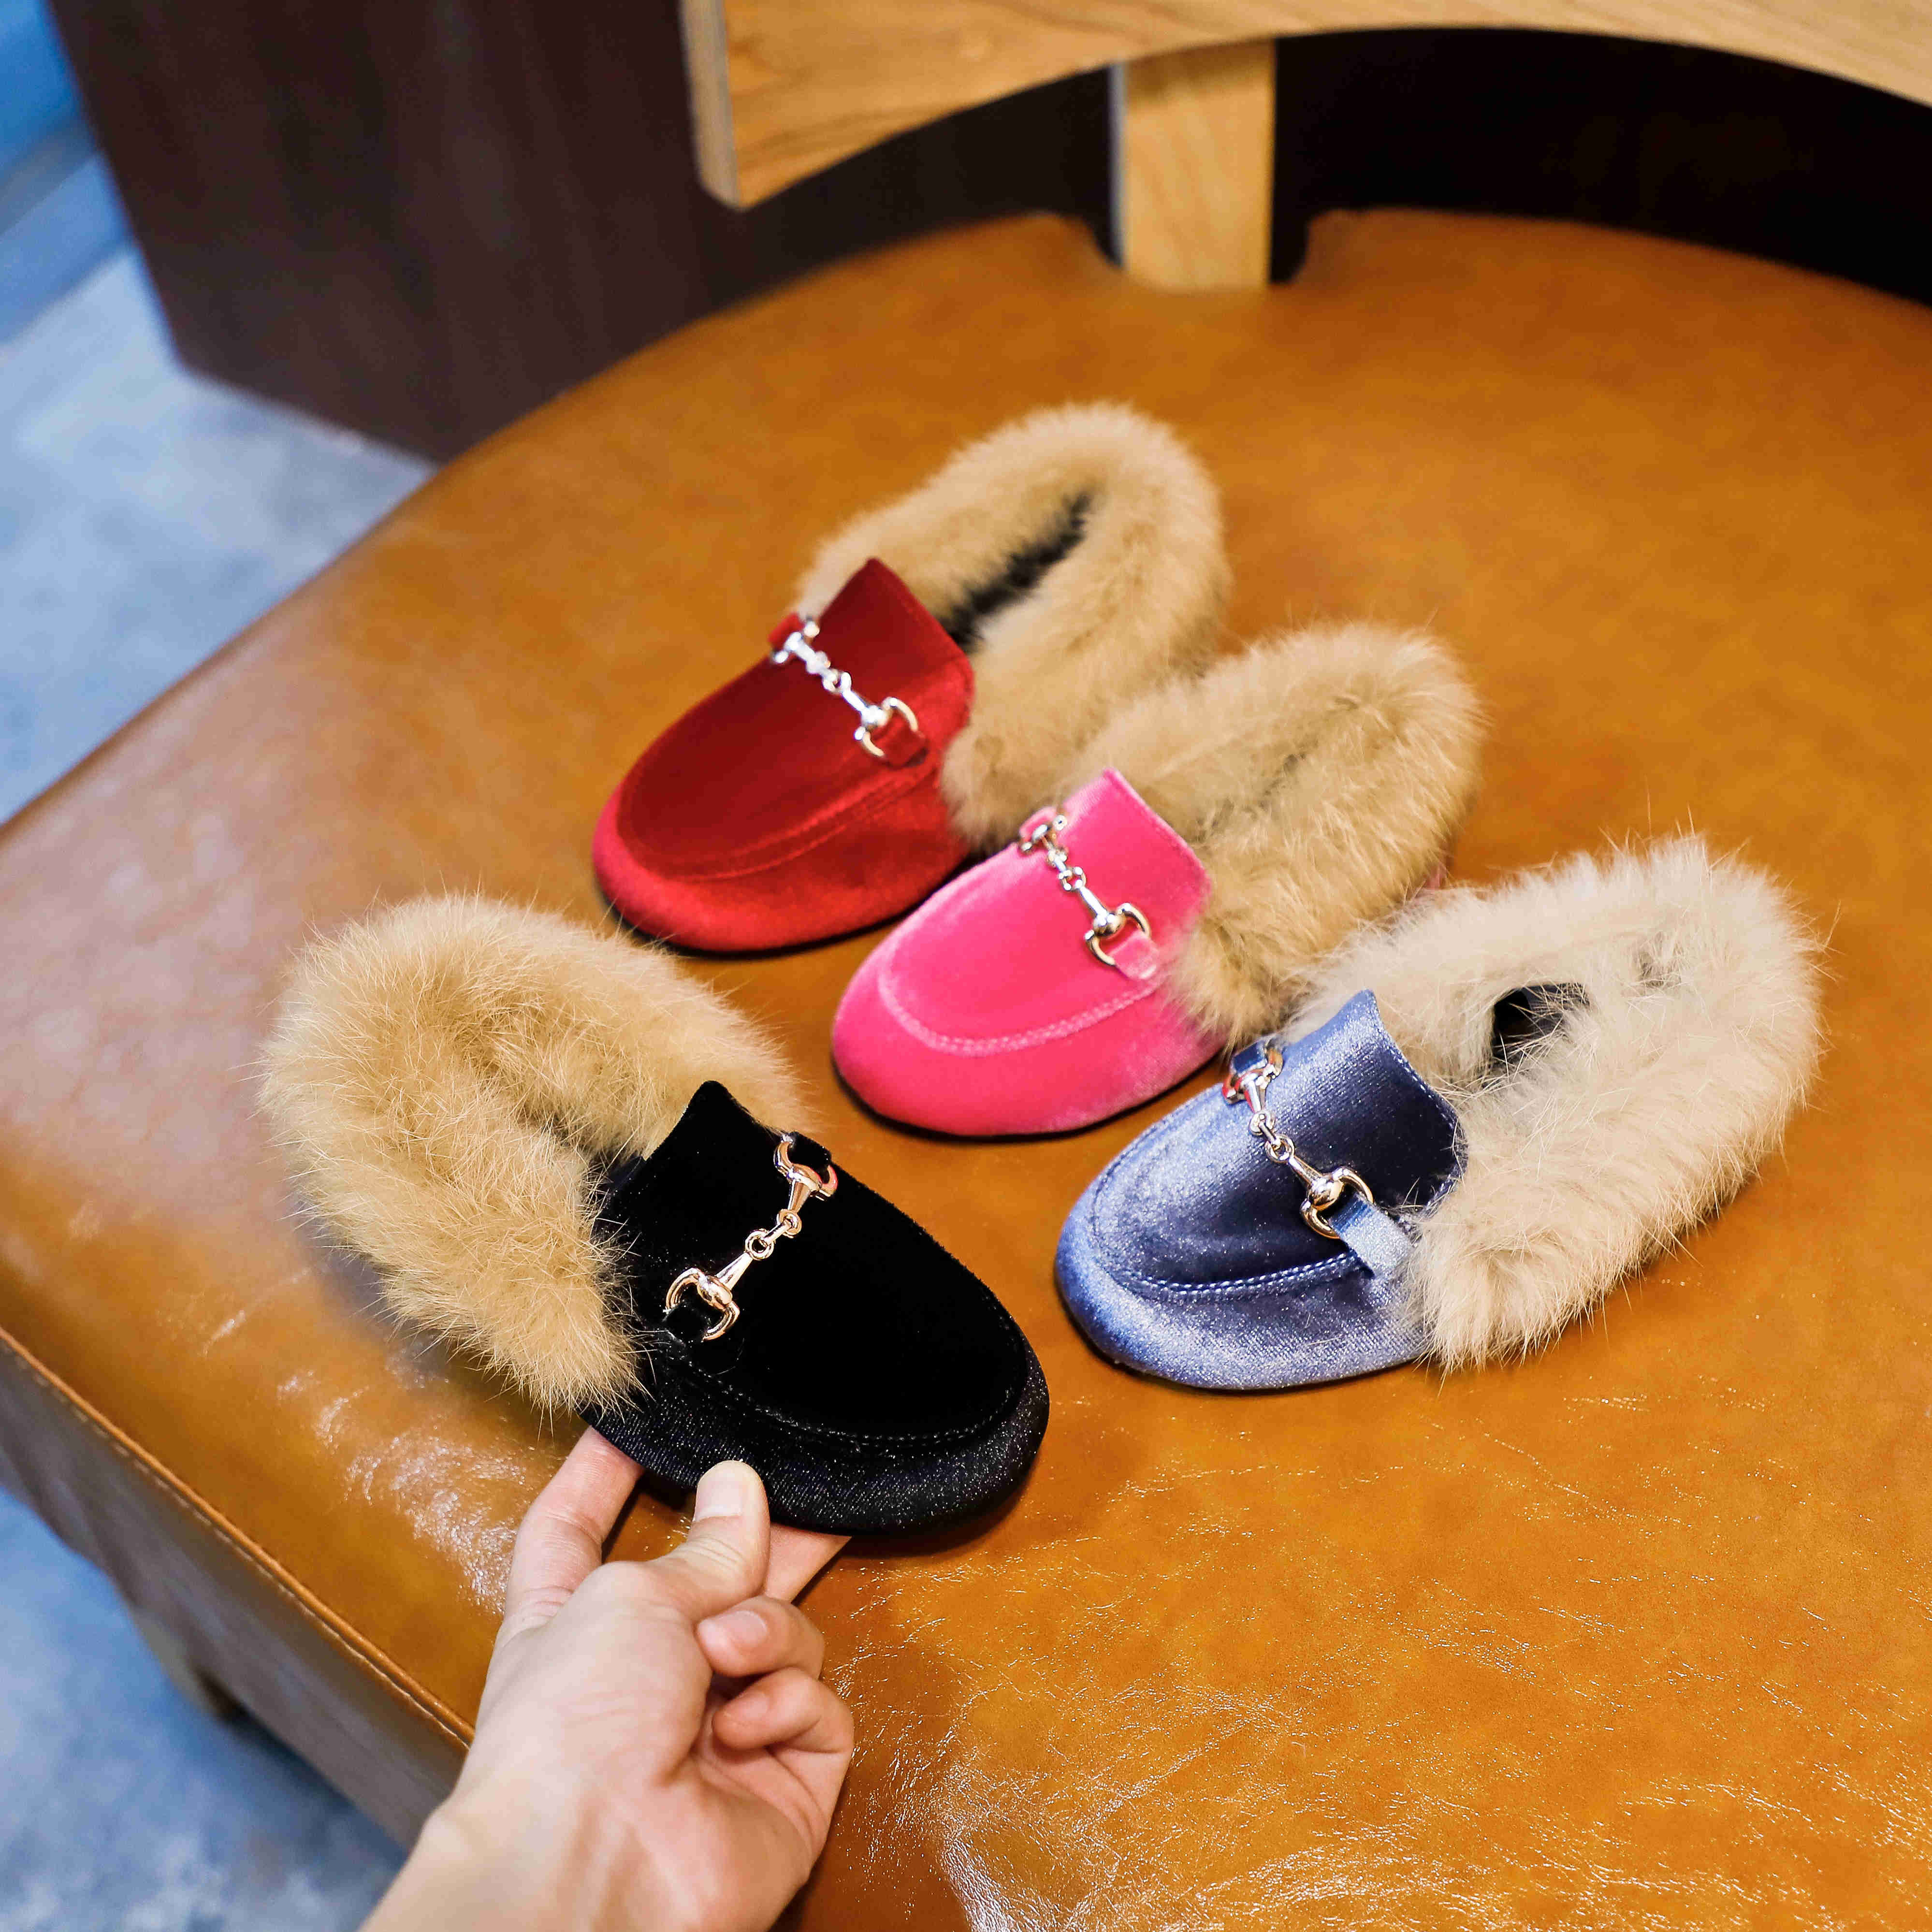 kids-shoes-winter-warm-boys-girls-fashion-shoe-black-red-fur-flat-slip-on-non-slip-kids-shoes-quality-leather-new-hot-shoes